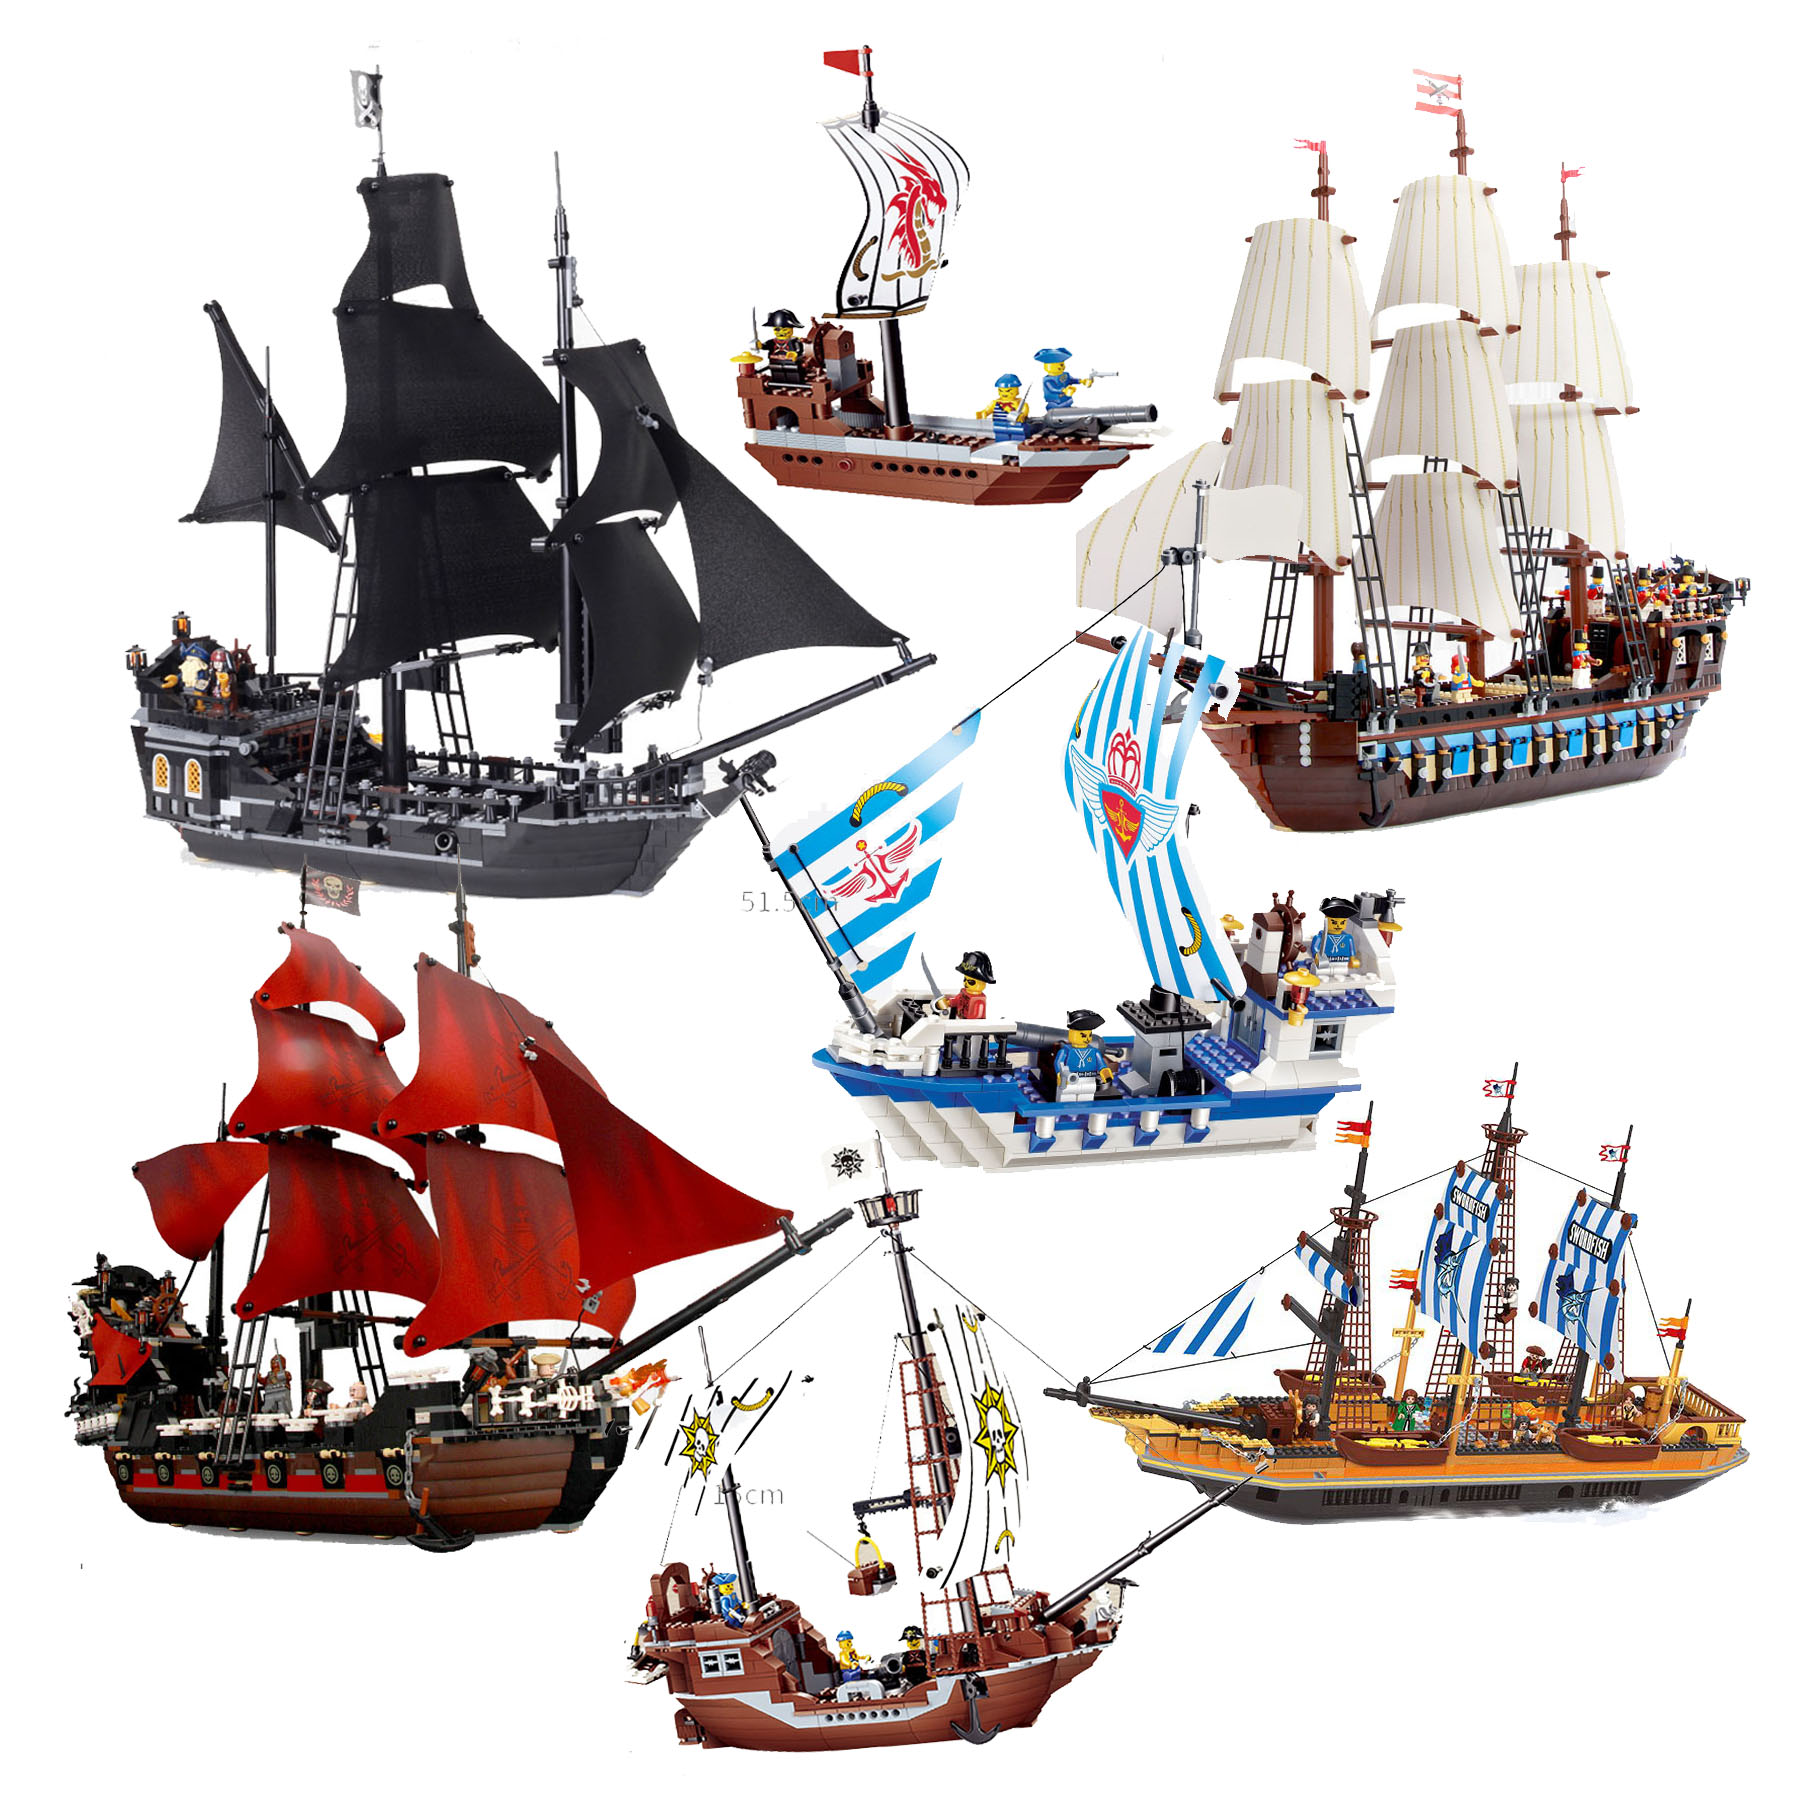 Building Block Large Pirate Ship Boat Queen Anne's Revenge Imperial Flagship Caribbean Sea Educational Bricks Toy Boy Gift